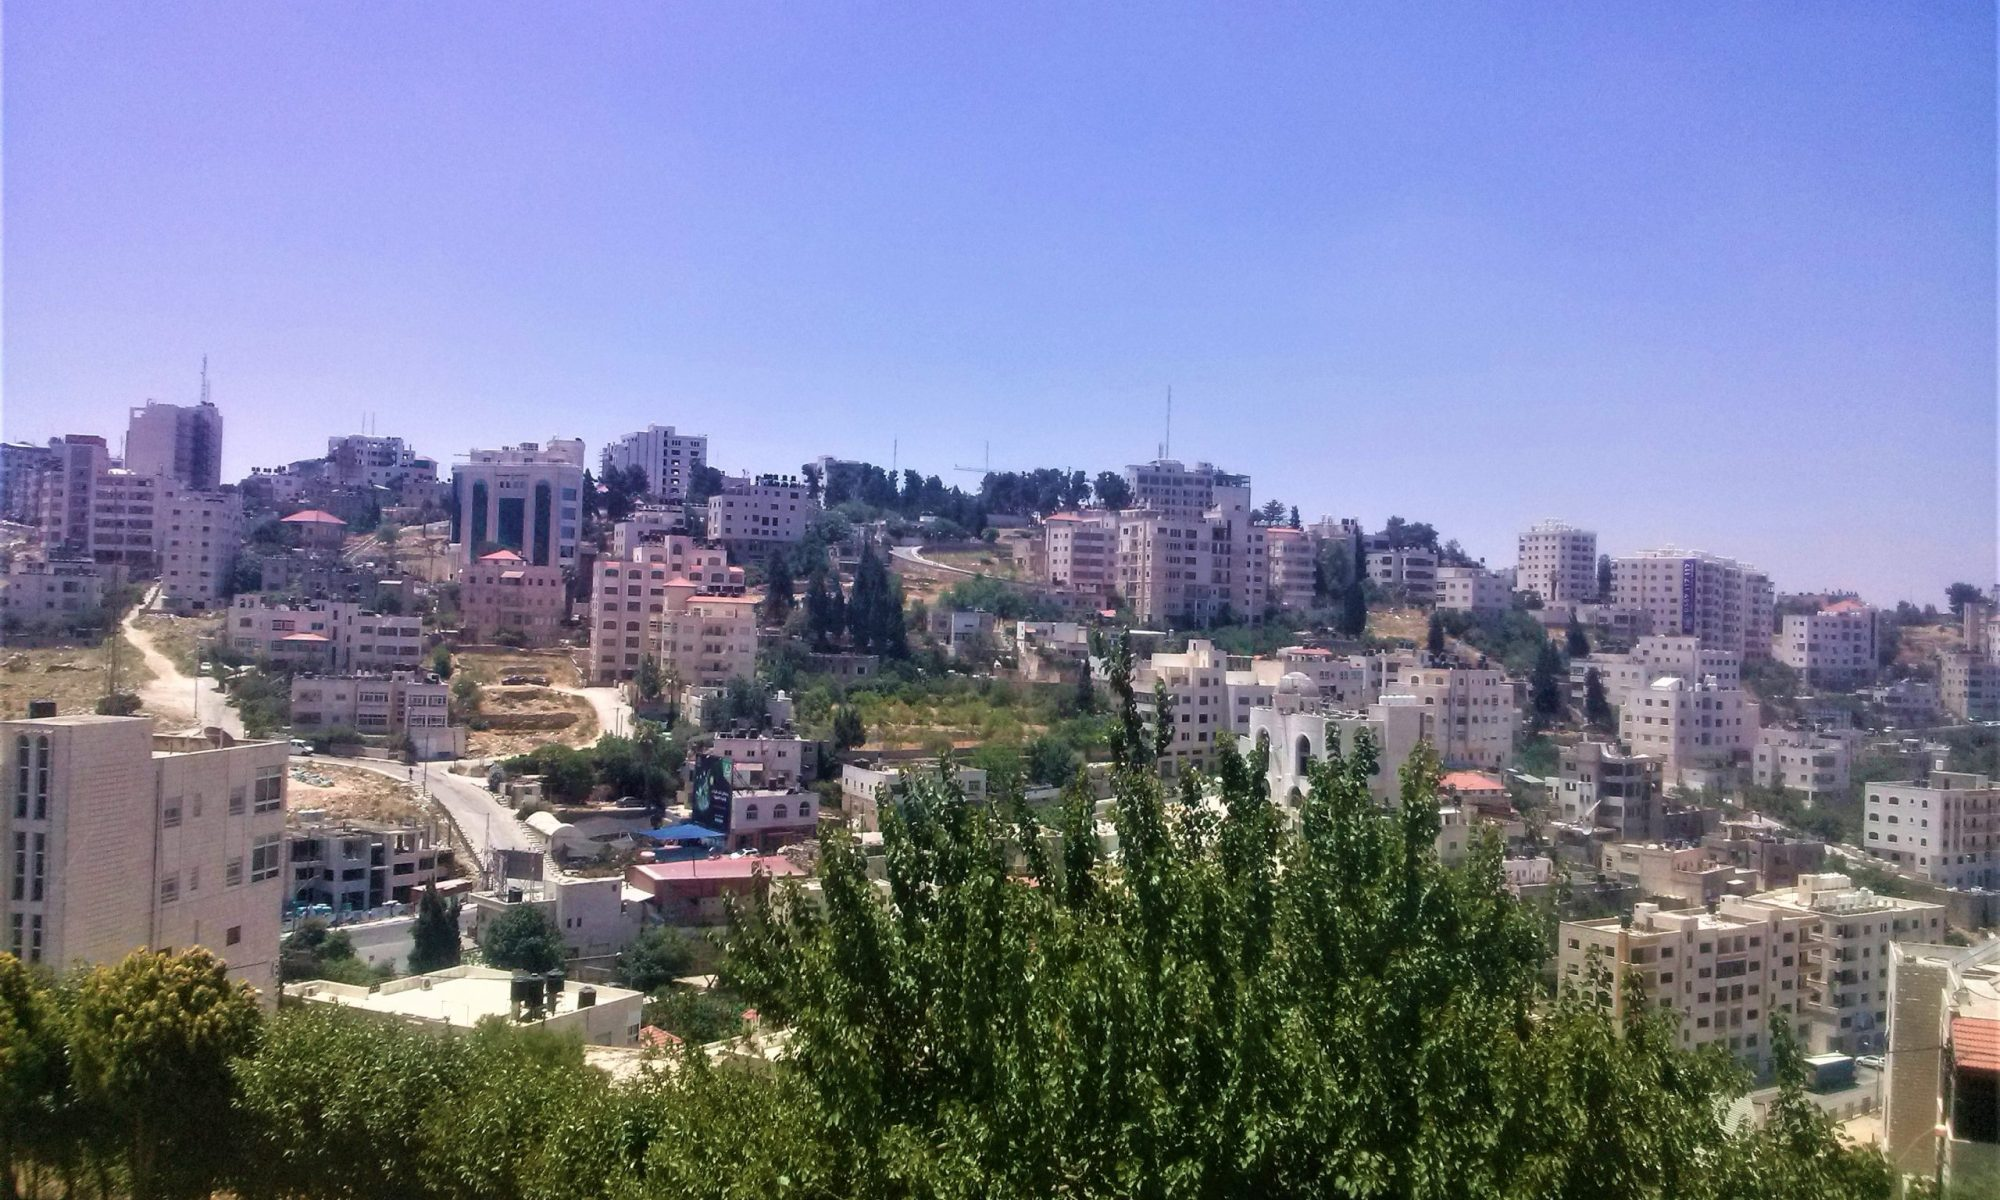 K in Motion Travel Blog. What Is It Really Like in Palestine. Ramallah